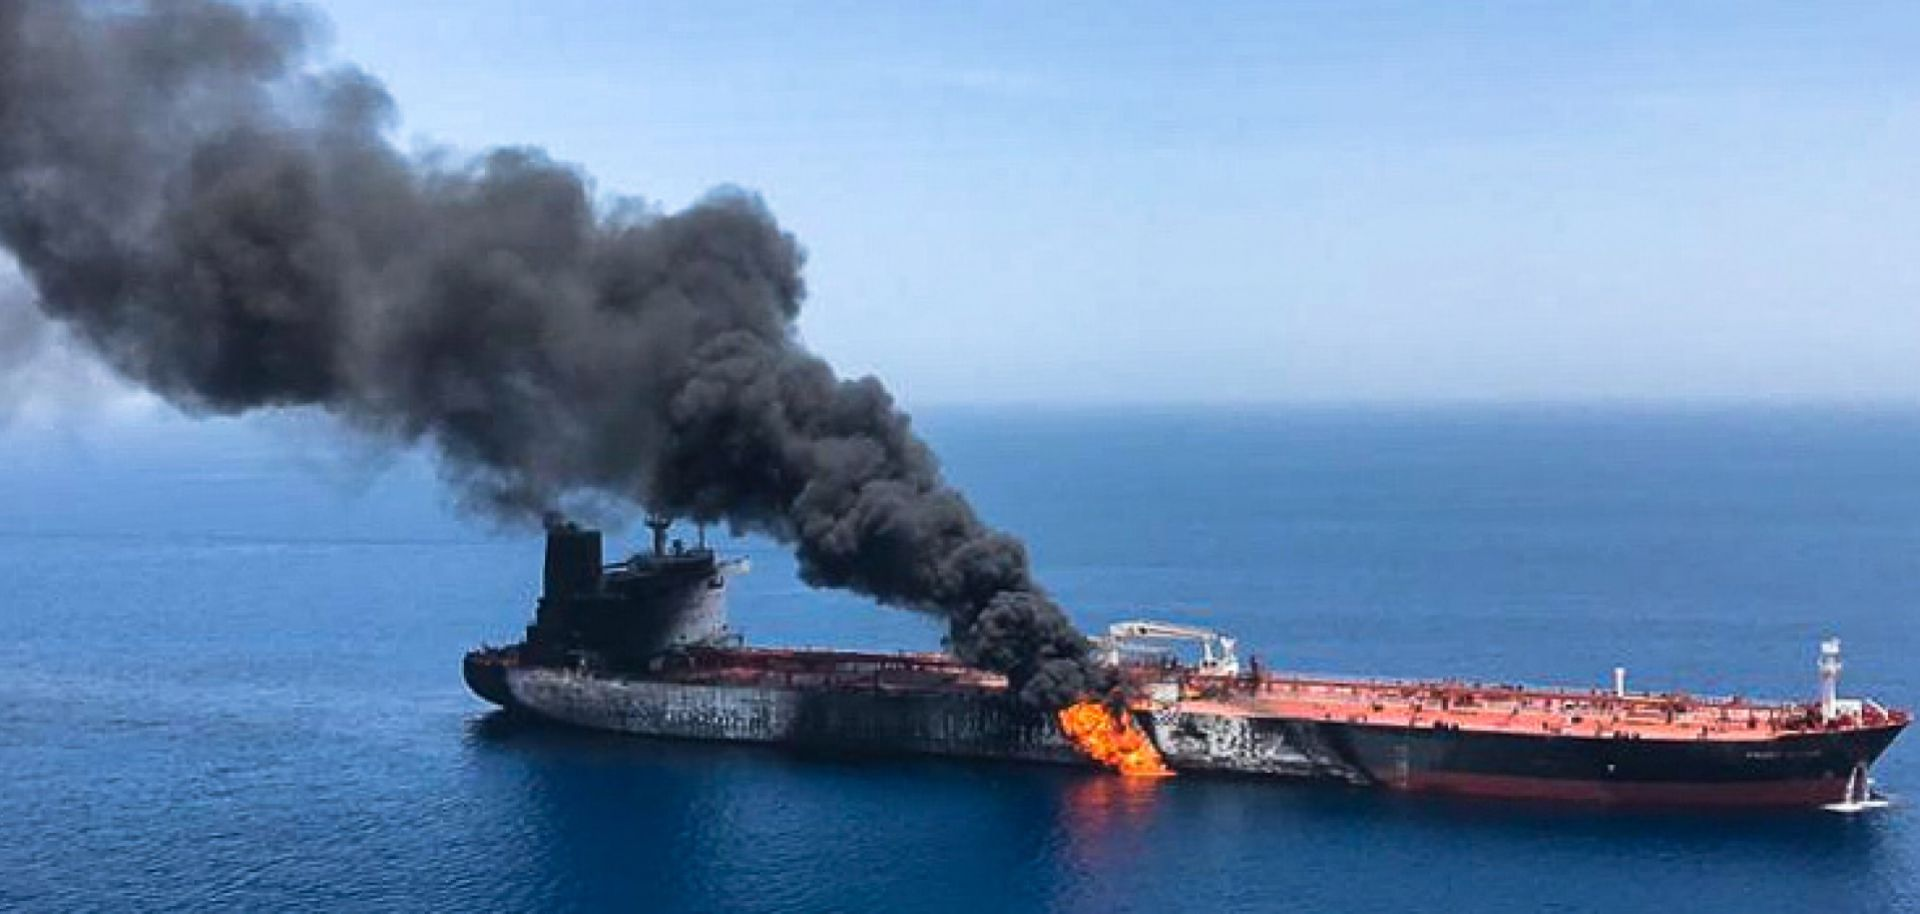 A picture from June 13 shows fire and smoke billowing from the Norwegian-owned Front Altair tanker, said to have been attacked in the waters of the Gulf of Oman.